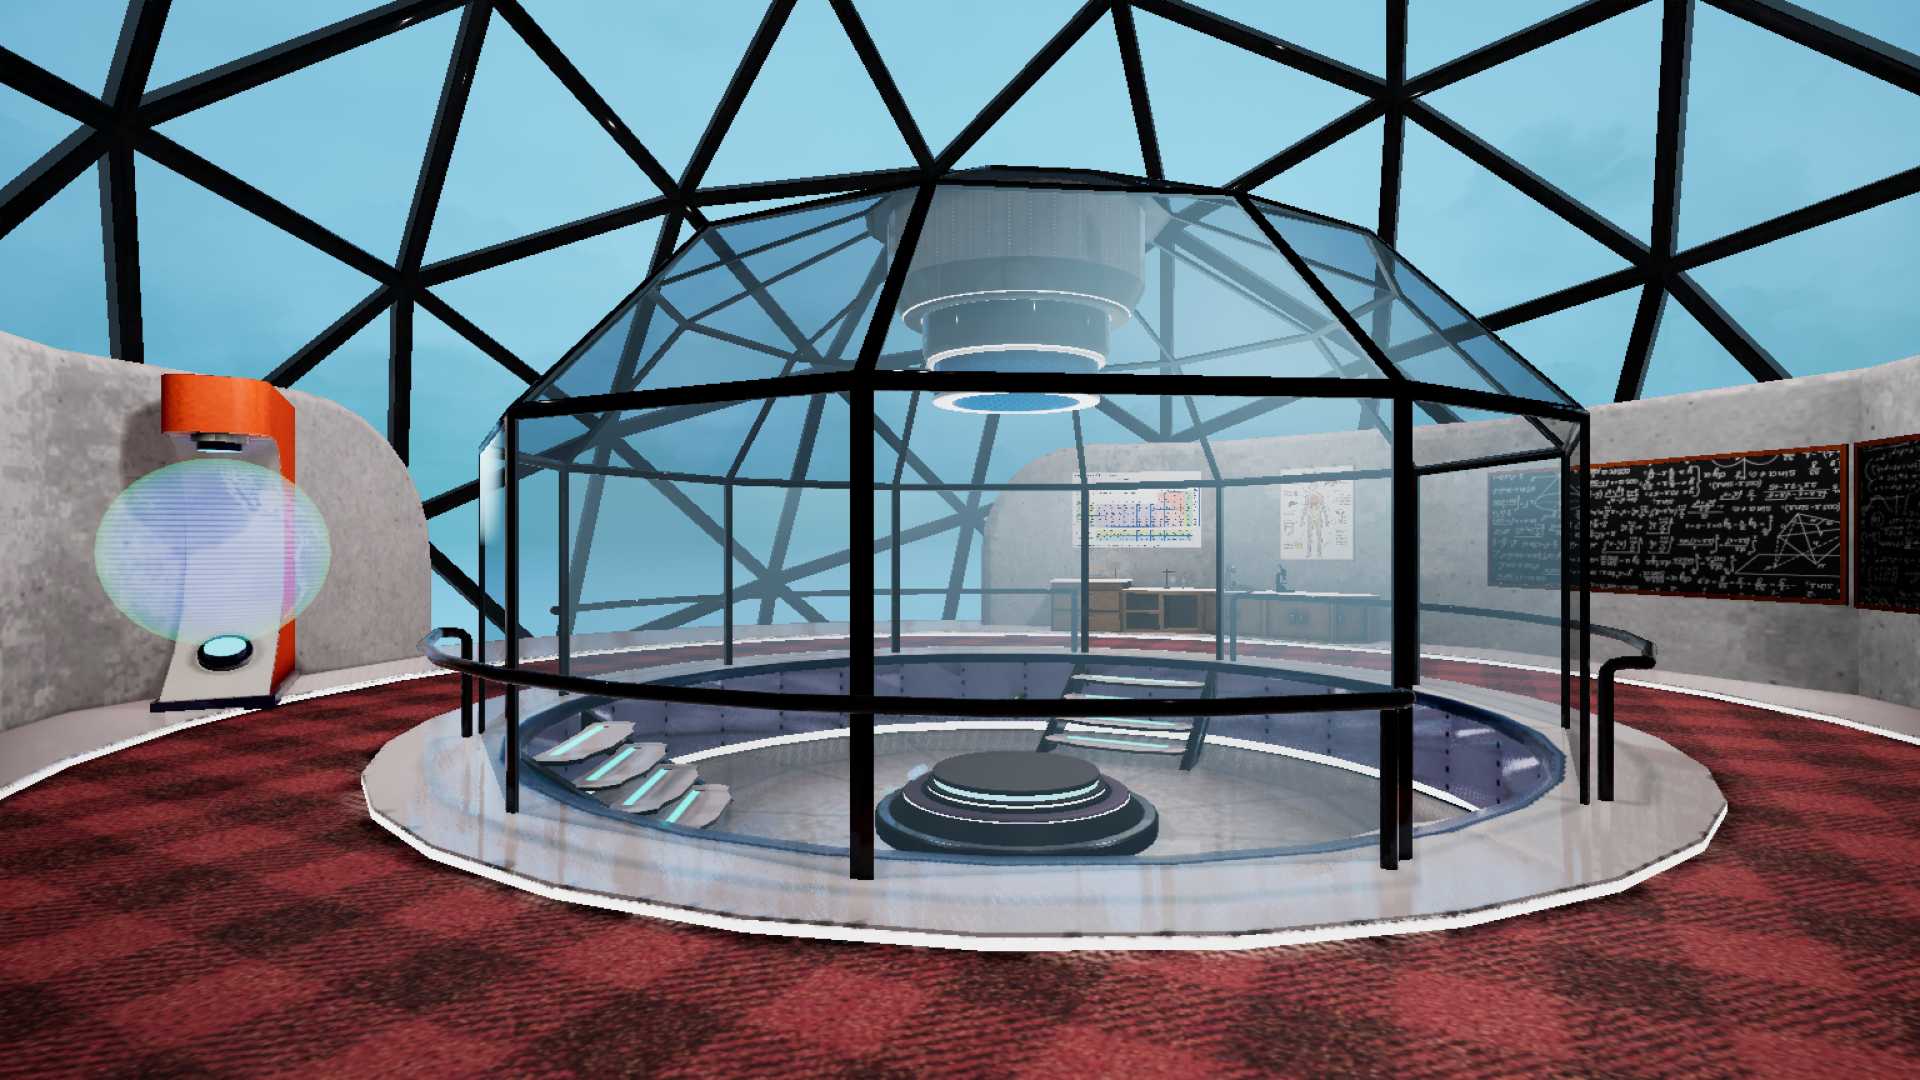 image of lab environment in a game created by Sounak